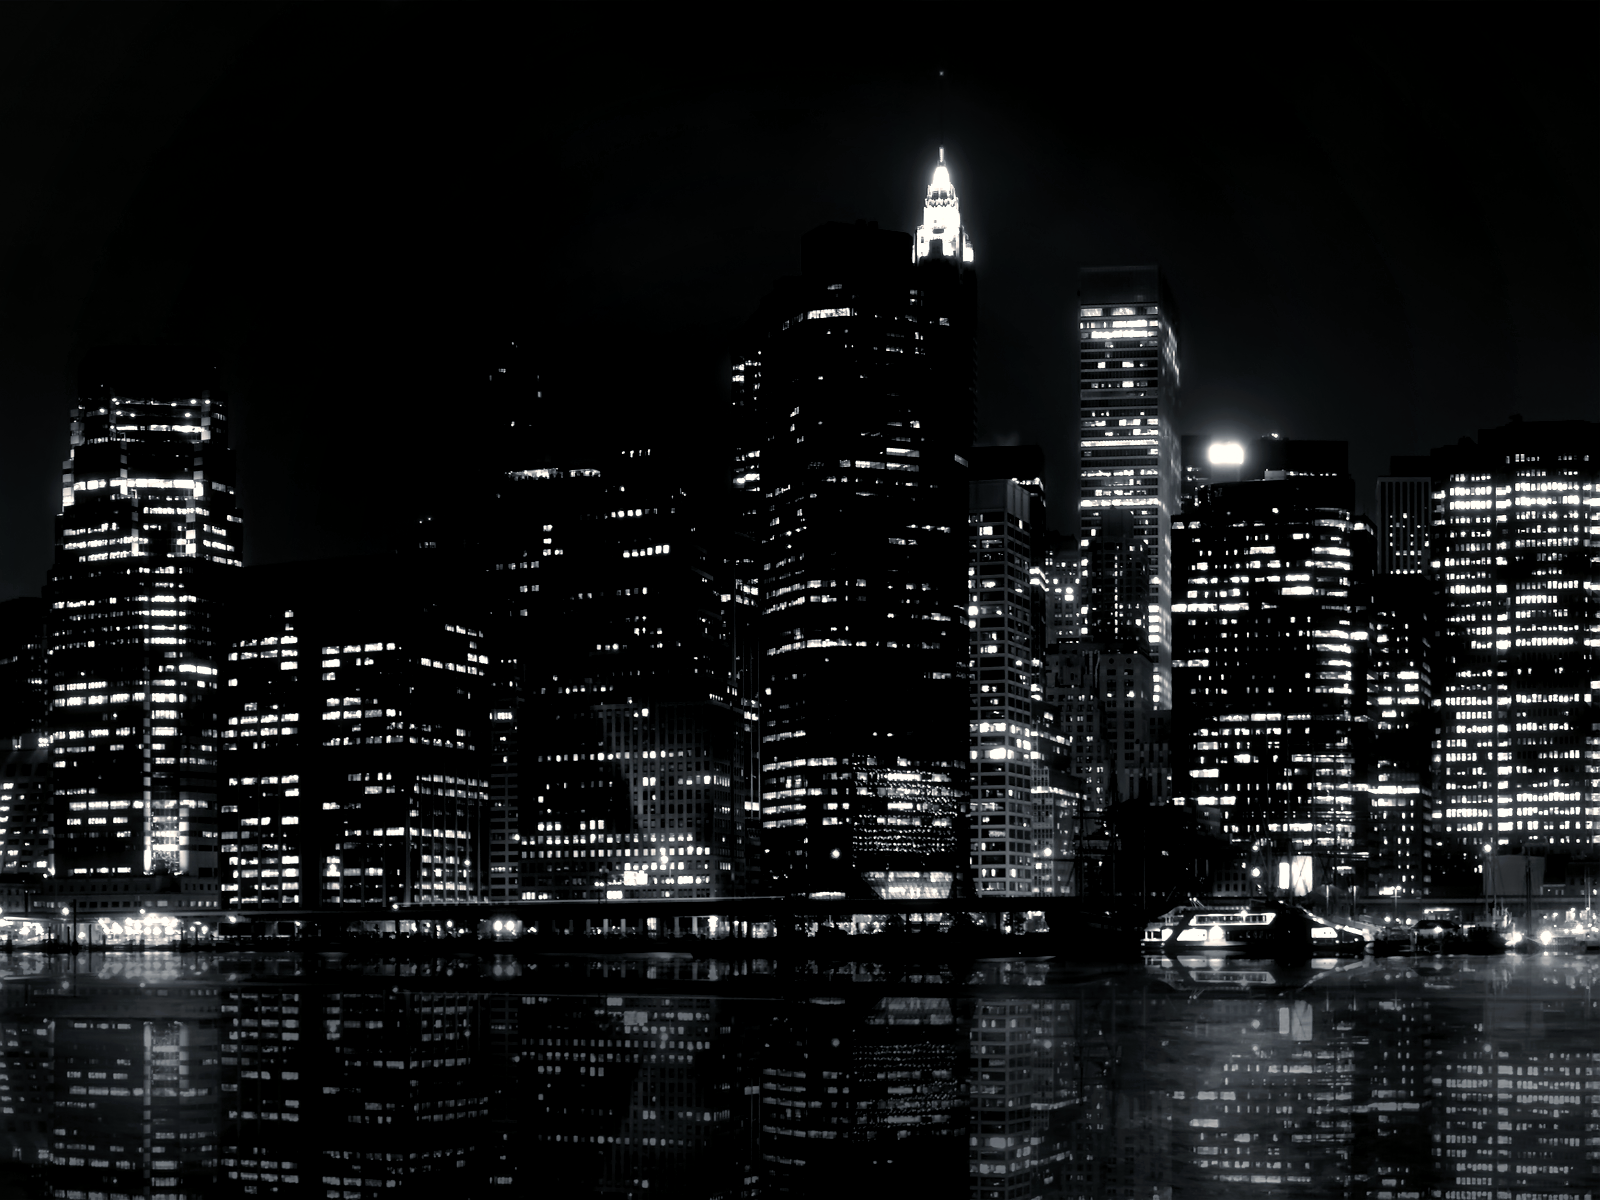 http://1.bp.blogspot.com/-qawR92WWkU0/UF3KrsyNEaI/AAAAAAAAAL4/1GhncLnmXjE/s1600/Black-and-White-City-Northern-hd-wallpaper.png